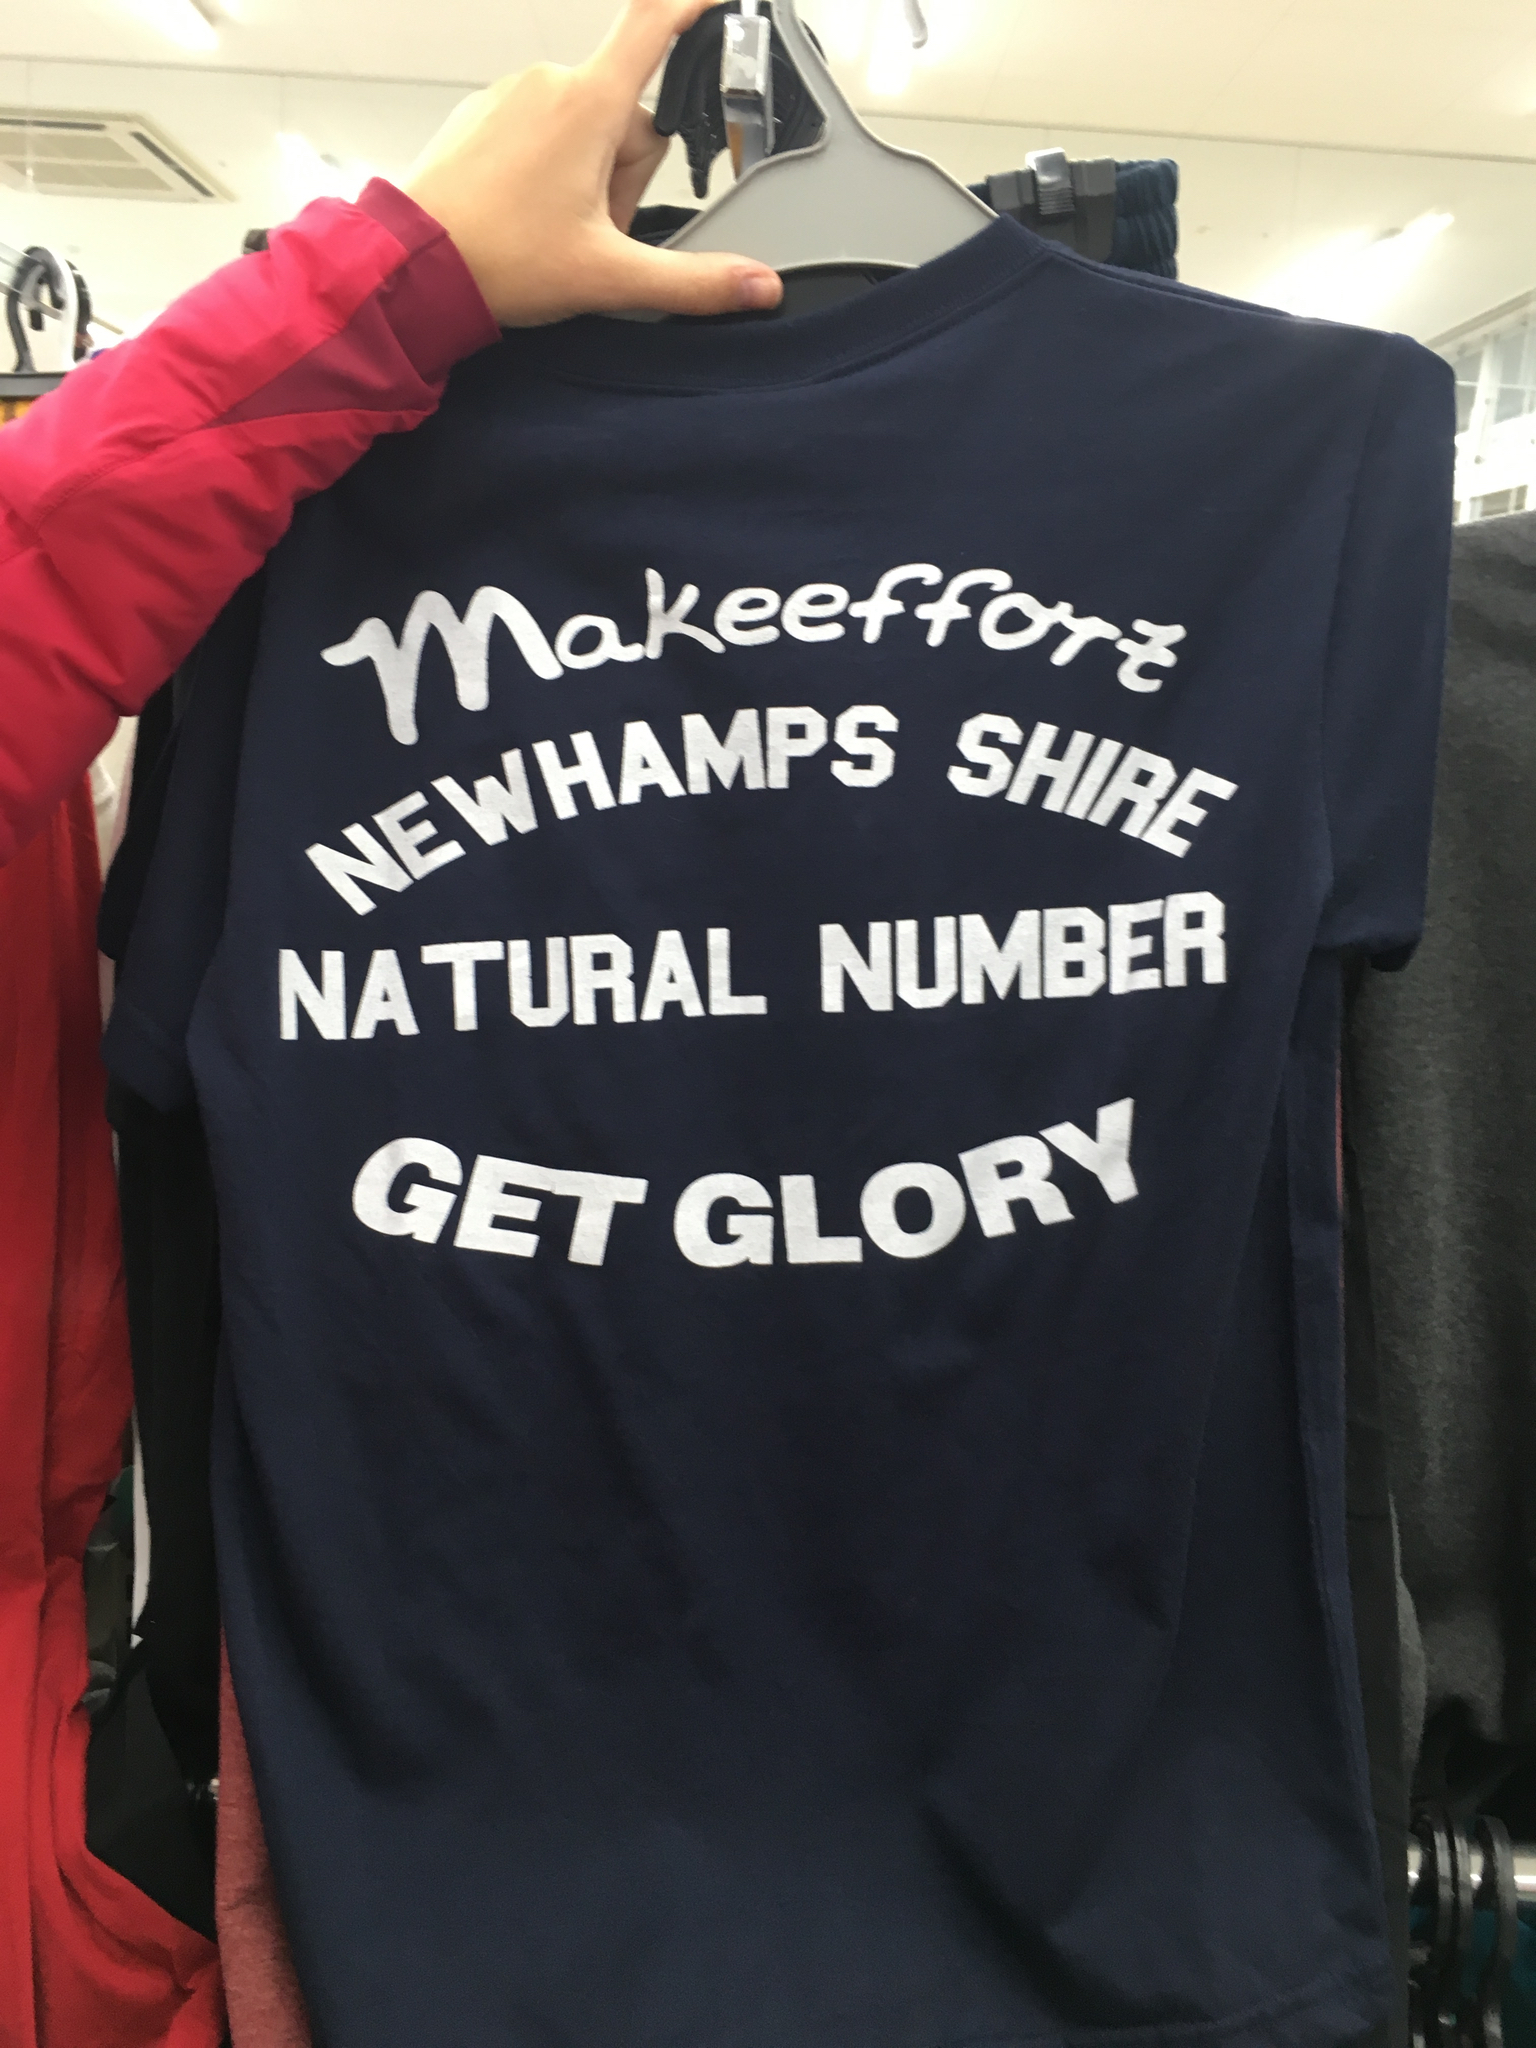 AMAZING shirt in the supermarket